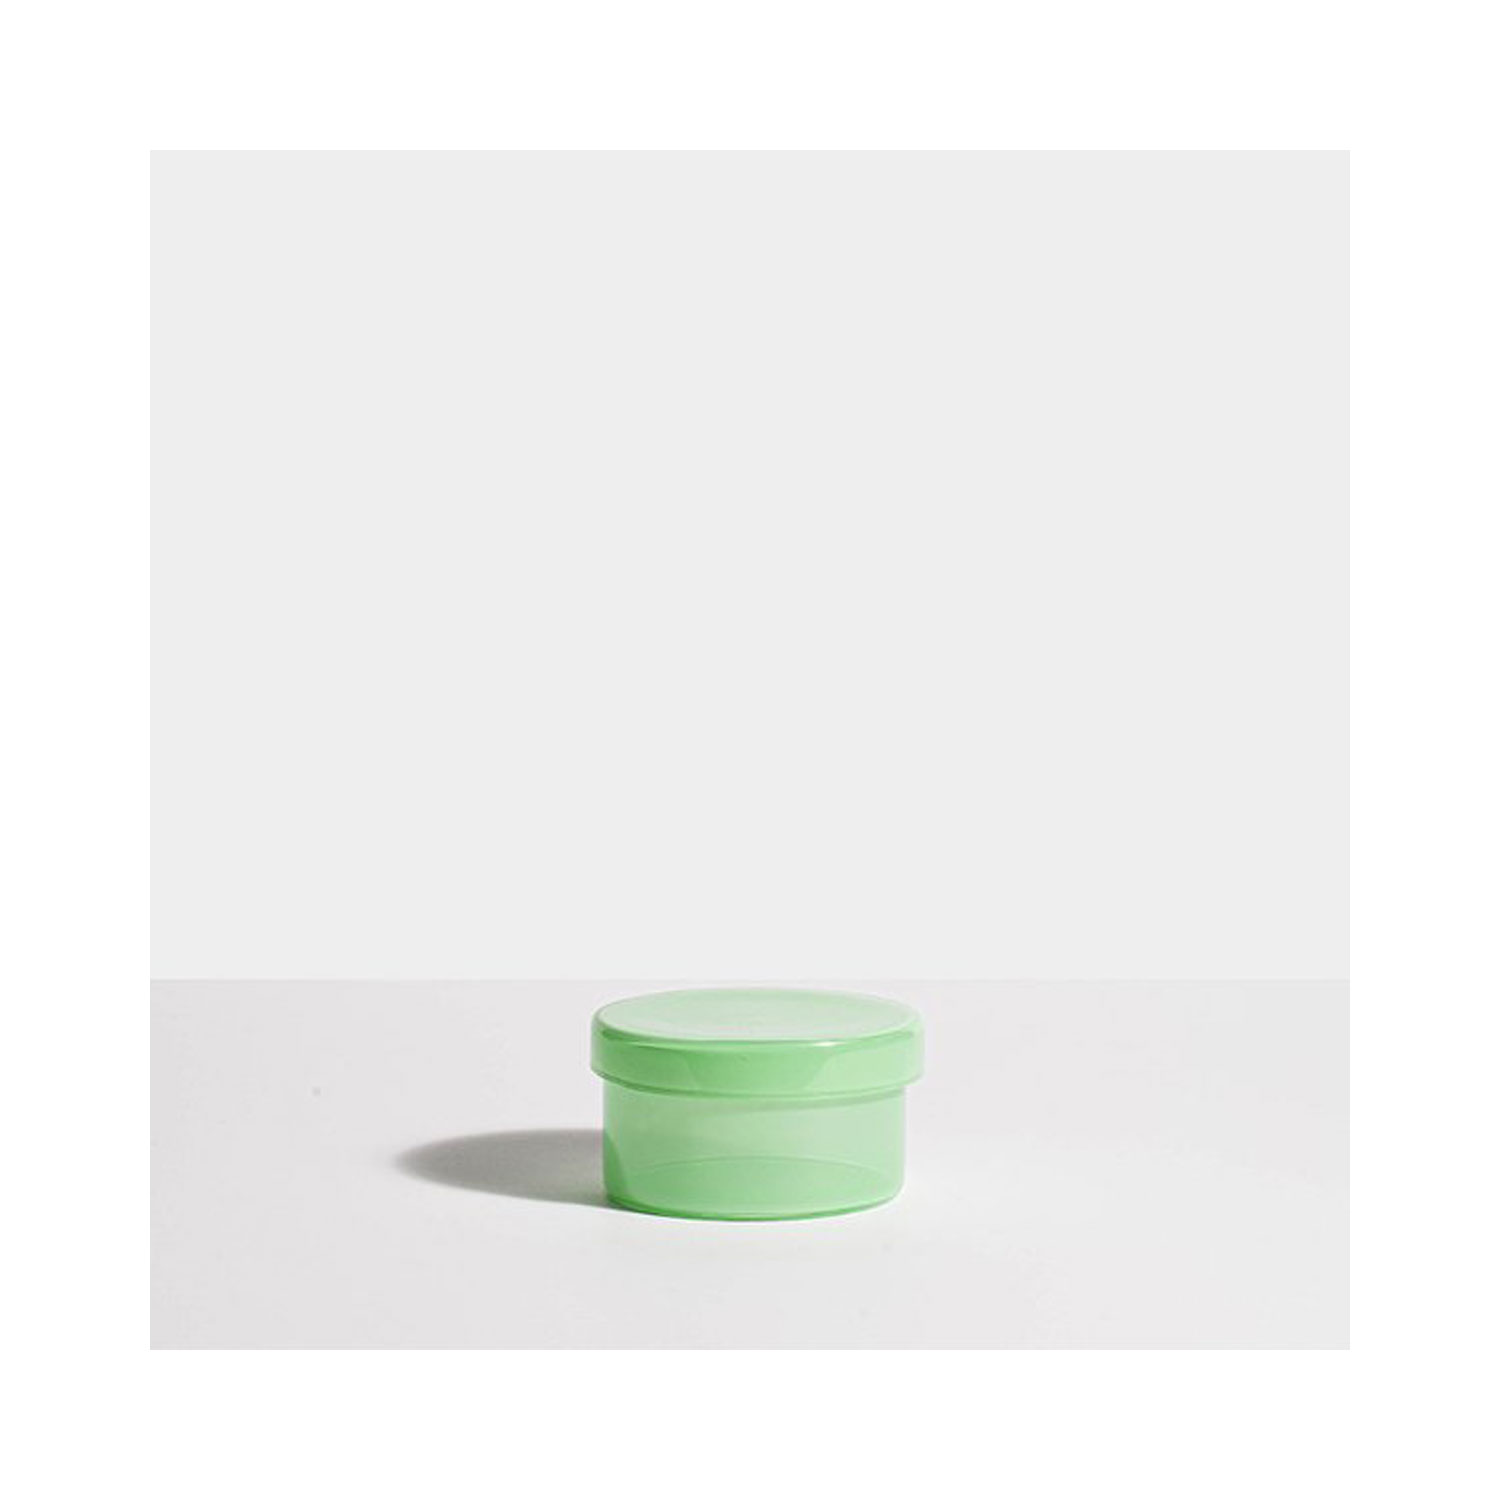 MINT GLASS CONTAINER BY YOWIE